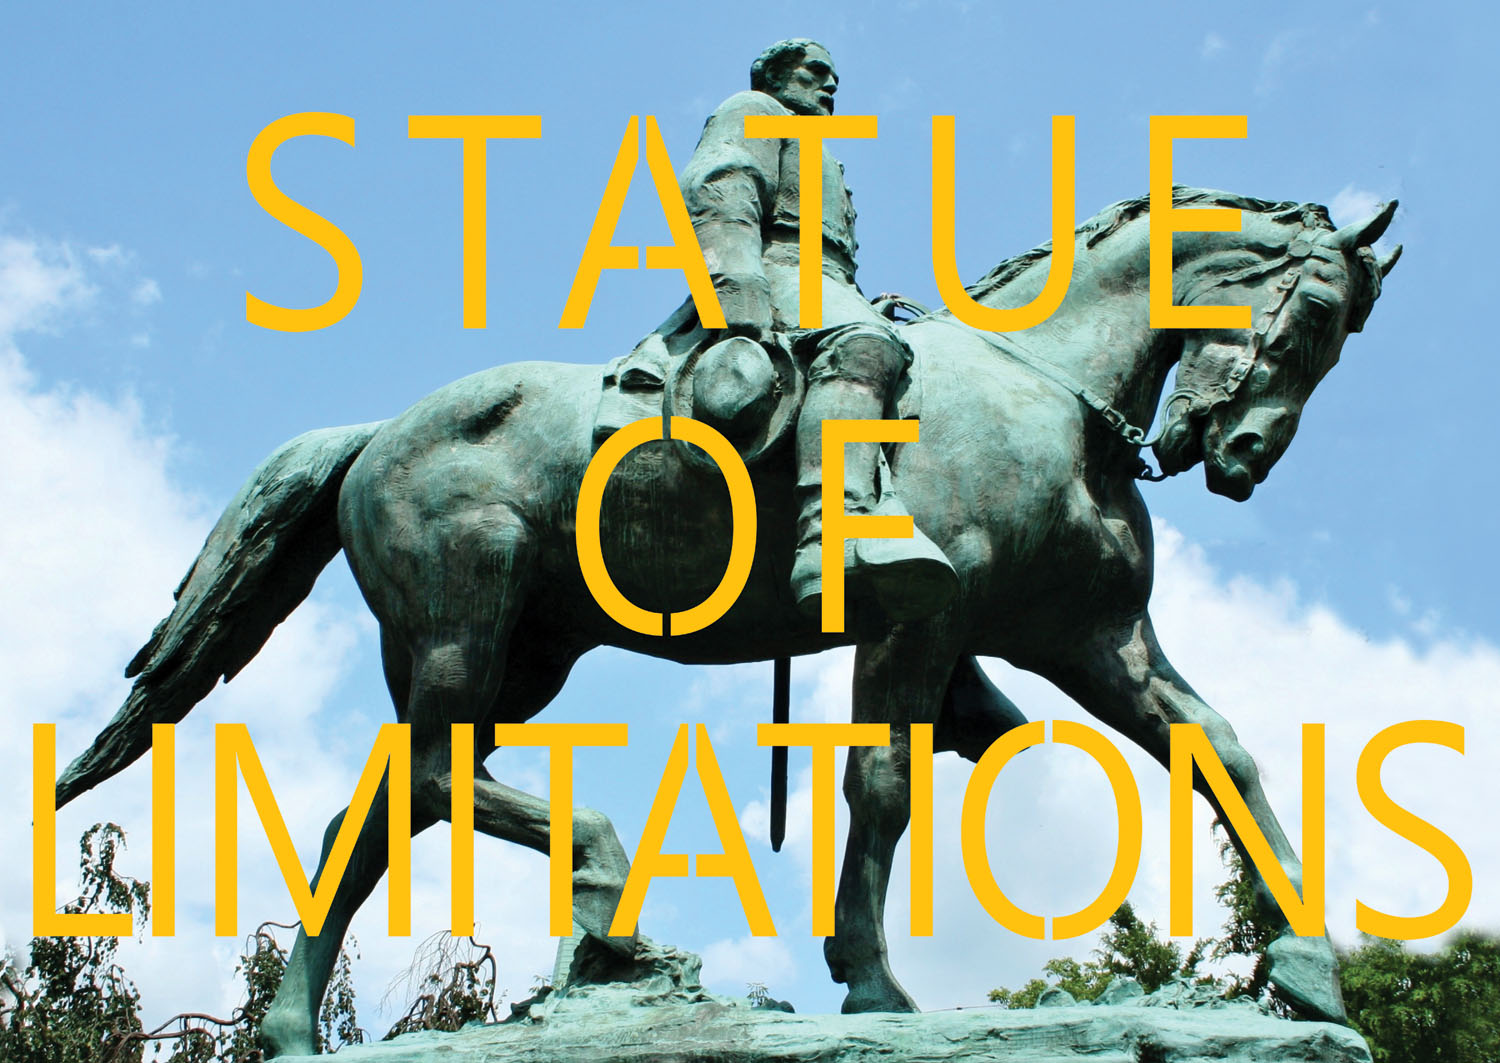 Statue of limitations